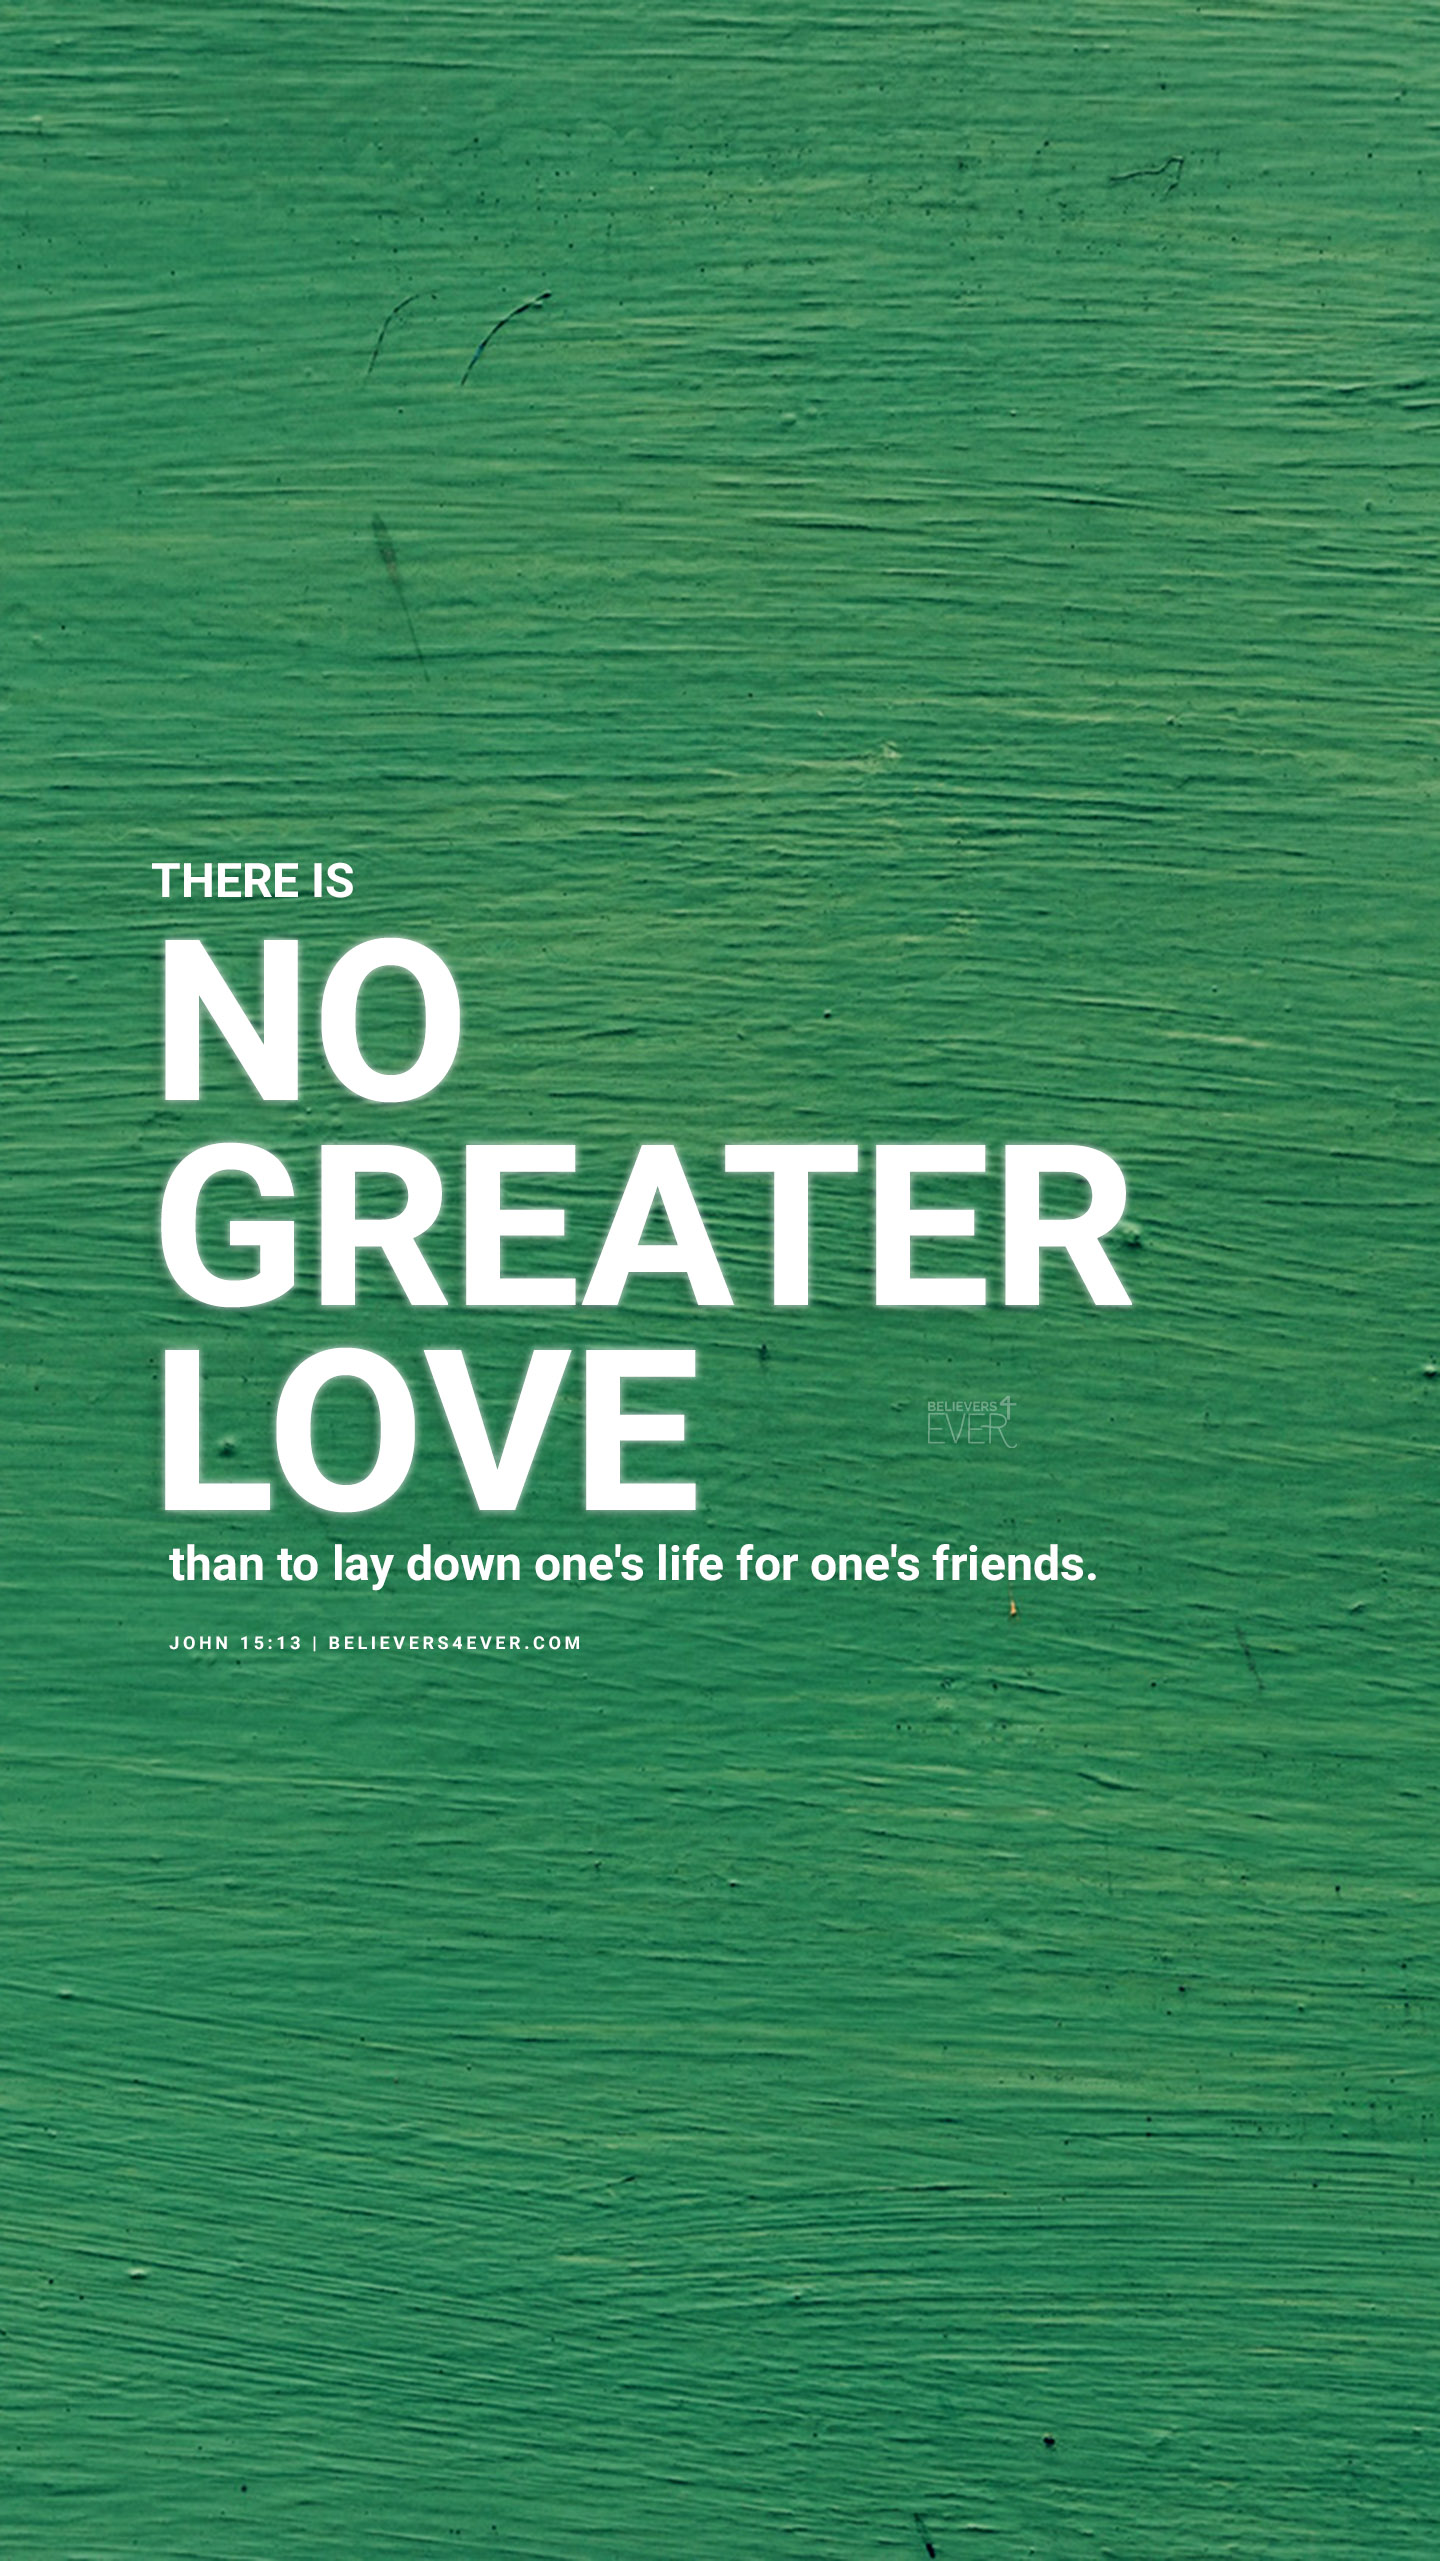 No Greater Love Believers4ever Com